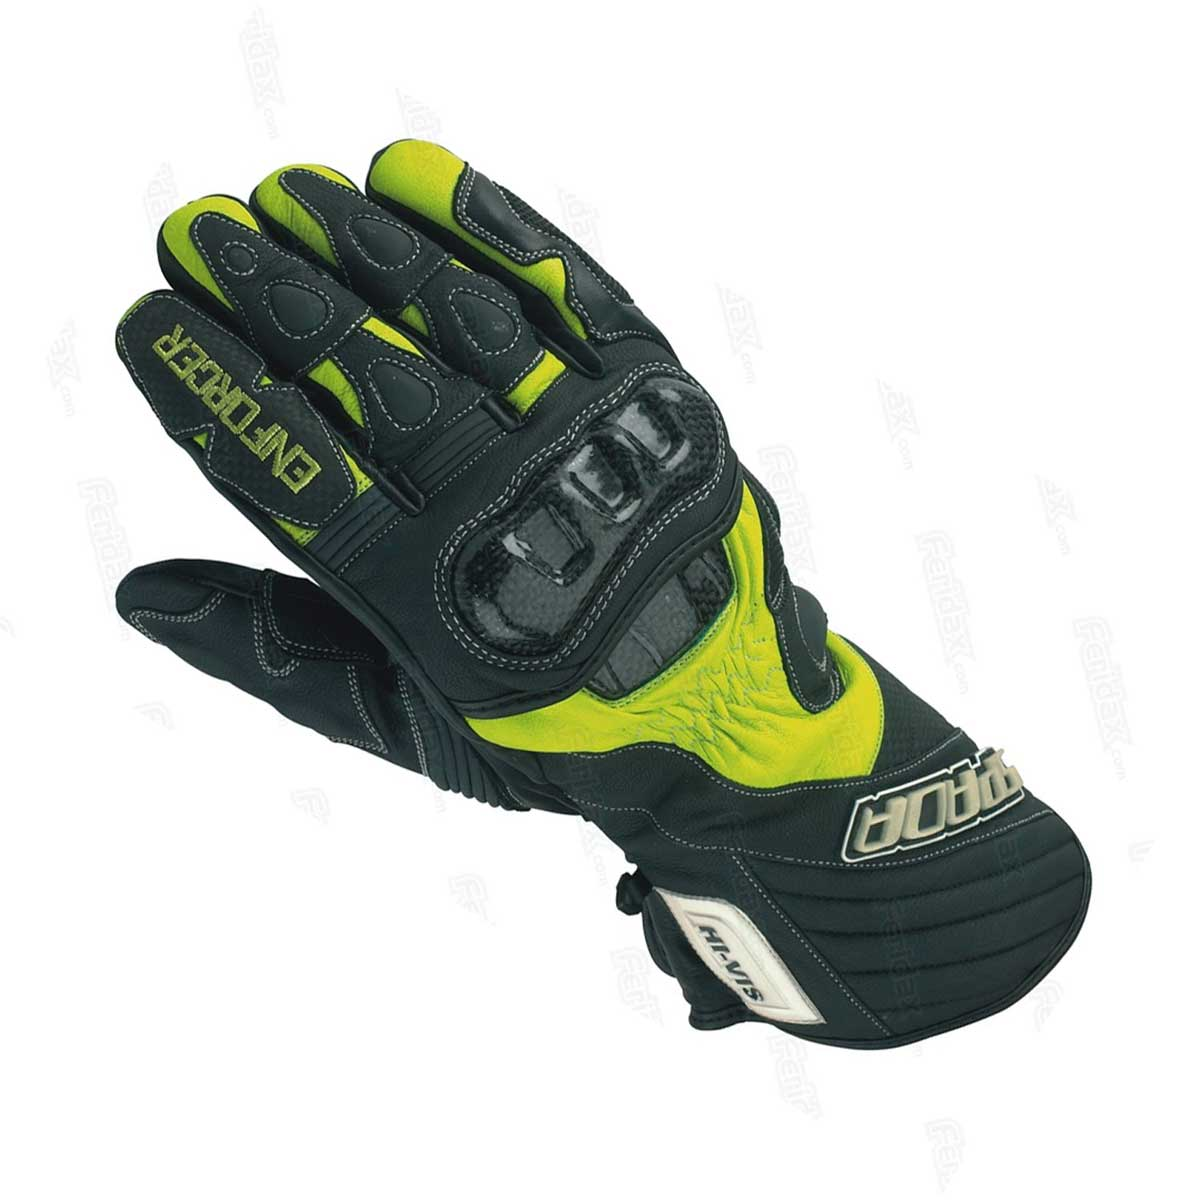 The Spada Enforcer Leather Gloves